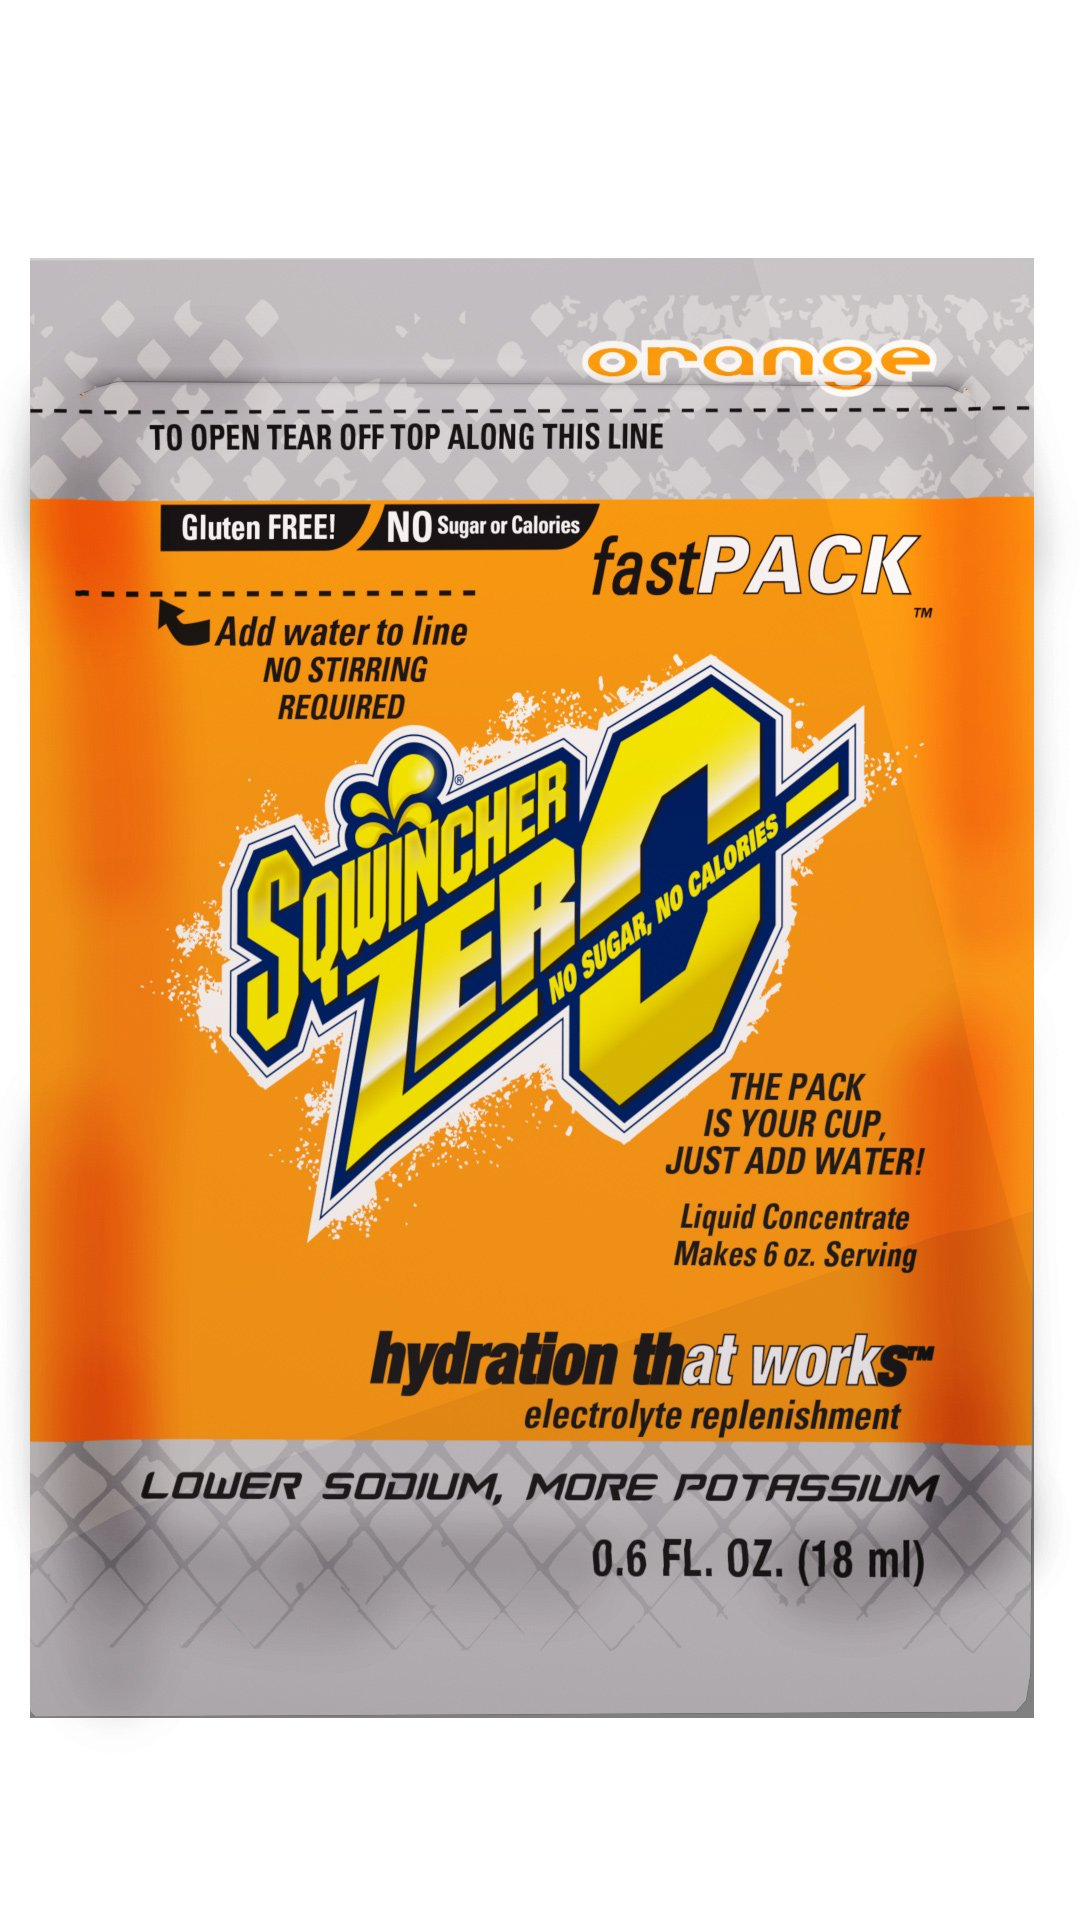 Sqwincher Zero Fast Pack Sugar Free Liquid Concentrate Electrolyte Replacement Beverage Mix, Orange 015500-OR (4 Boxes of 50)